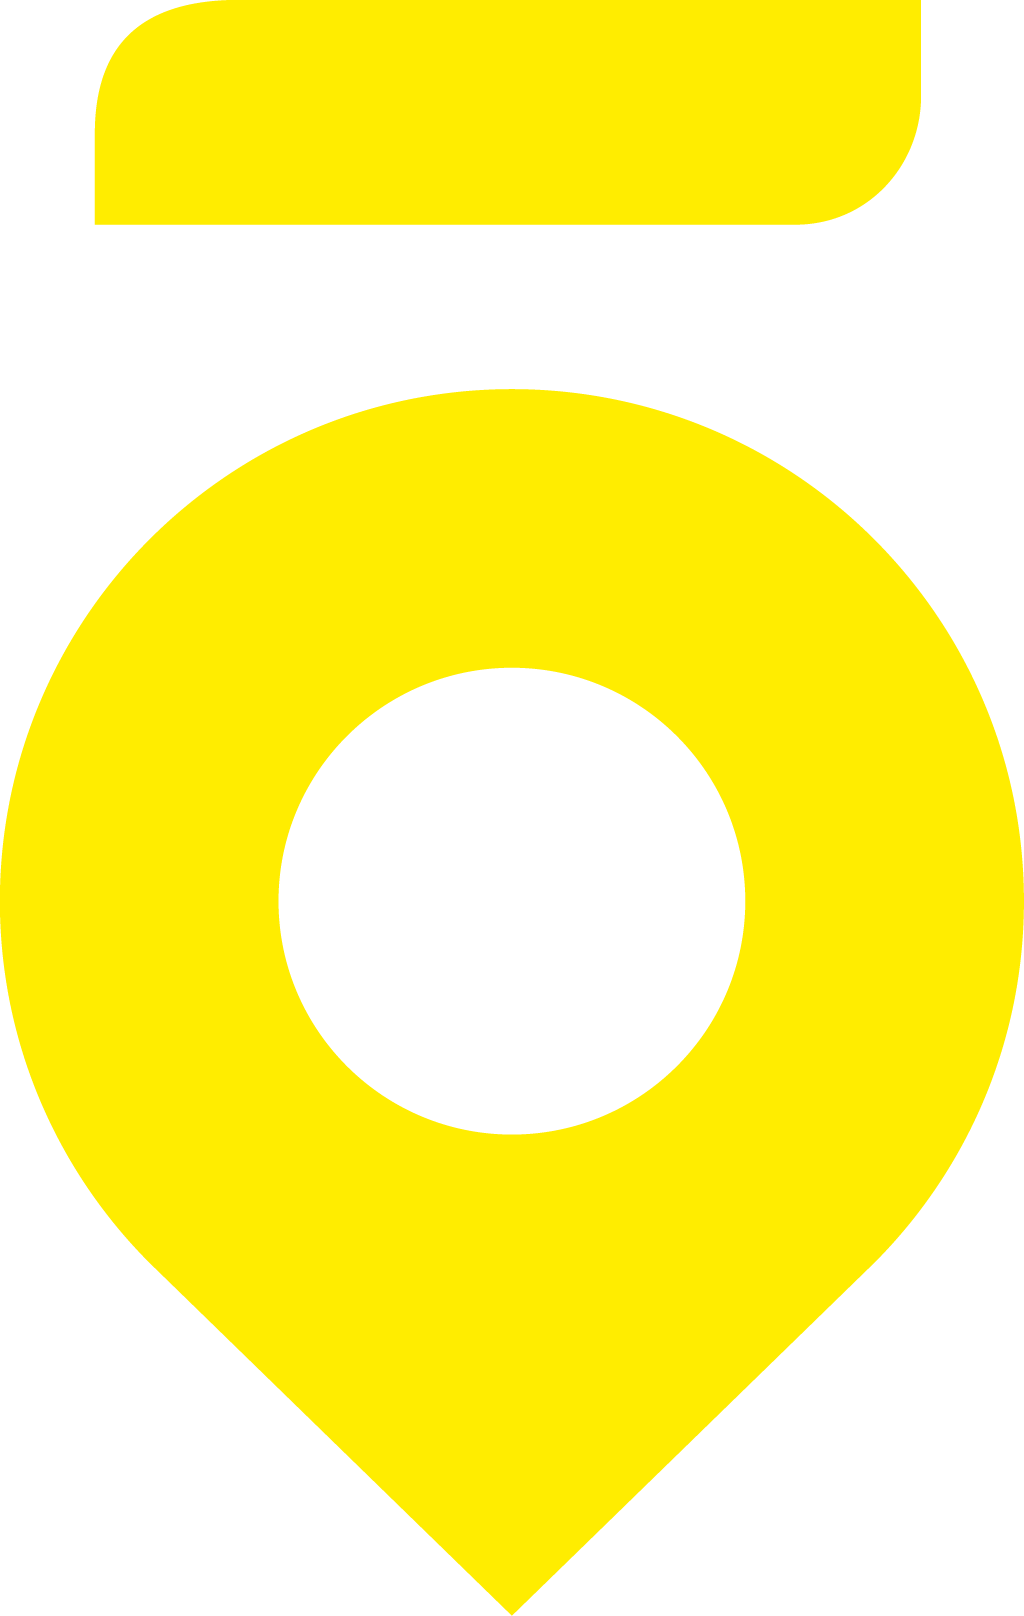 badge-yellow